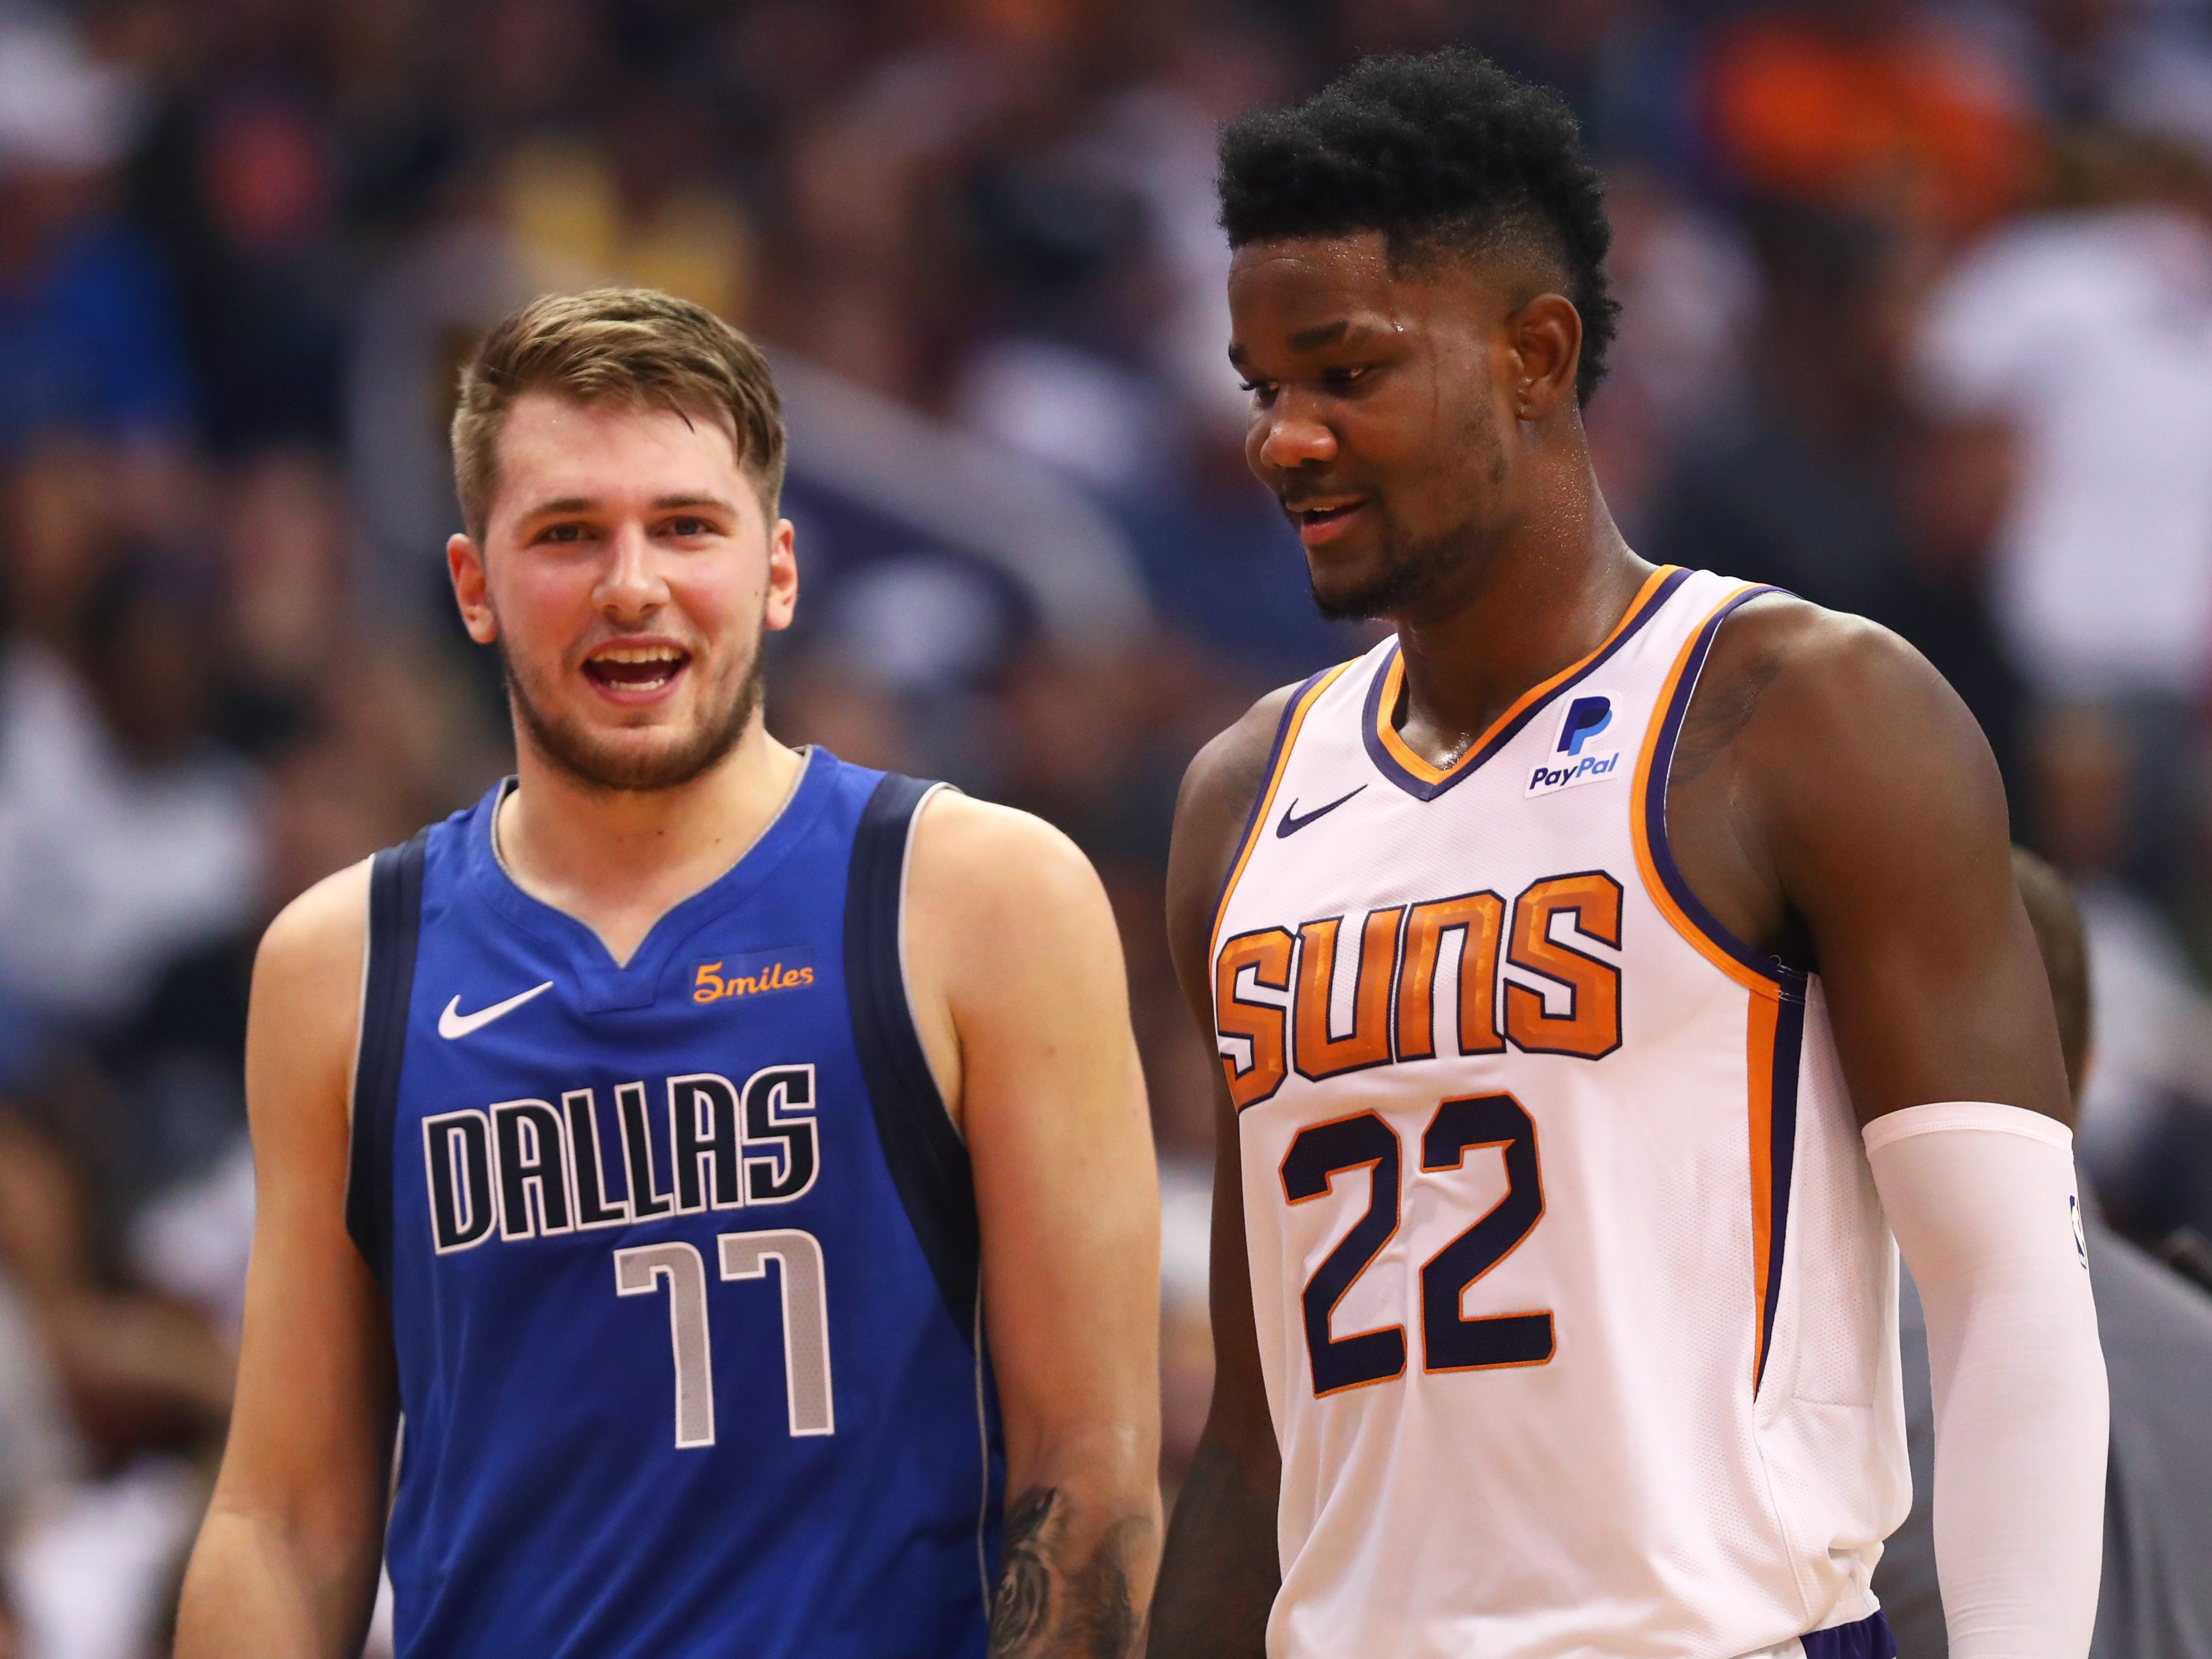 Oct. 17: Highly-touted rookies Suns center Deandre Ayton (No. 1 overall pick) and Mavericks guard Luka Doncic (No. 3 overall pick) share a word during the second half in Phoenix.